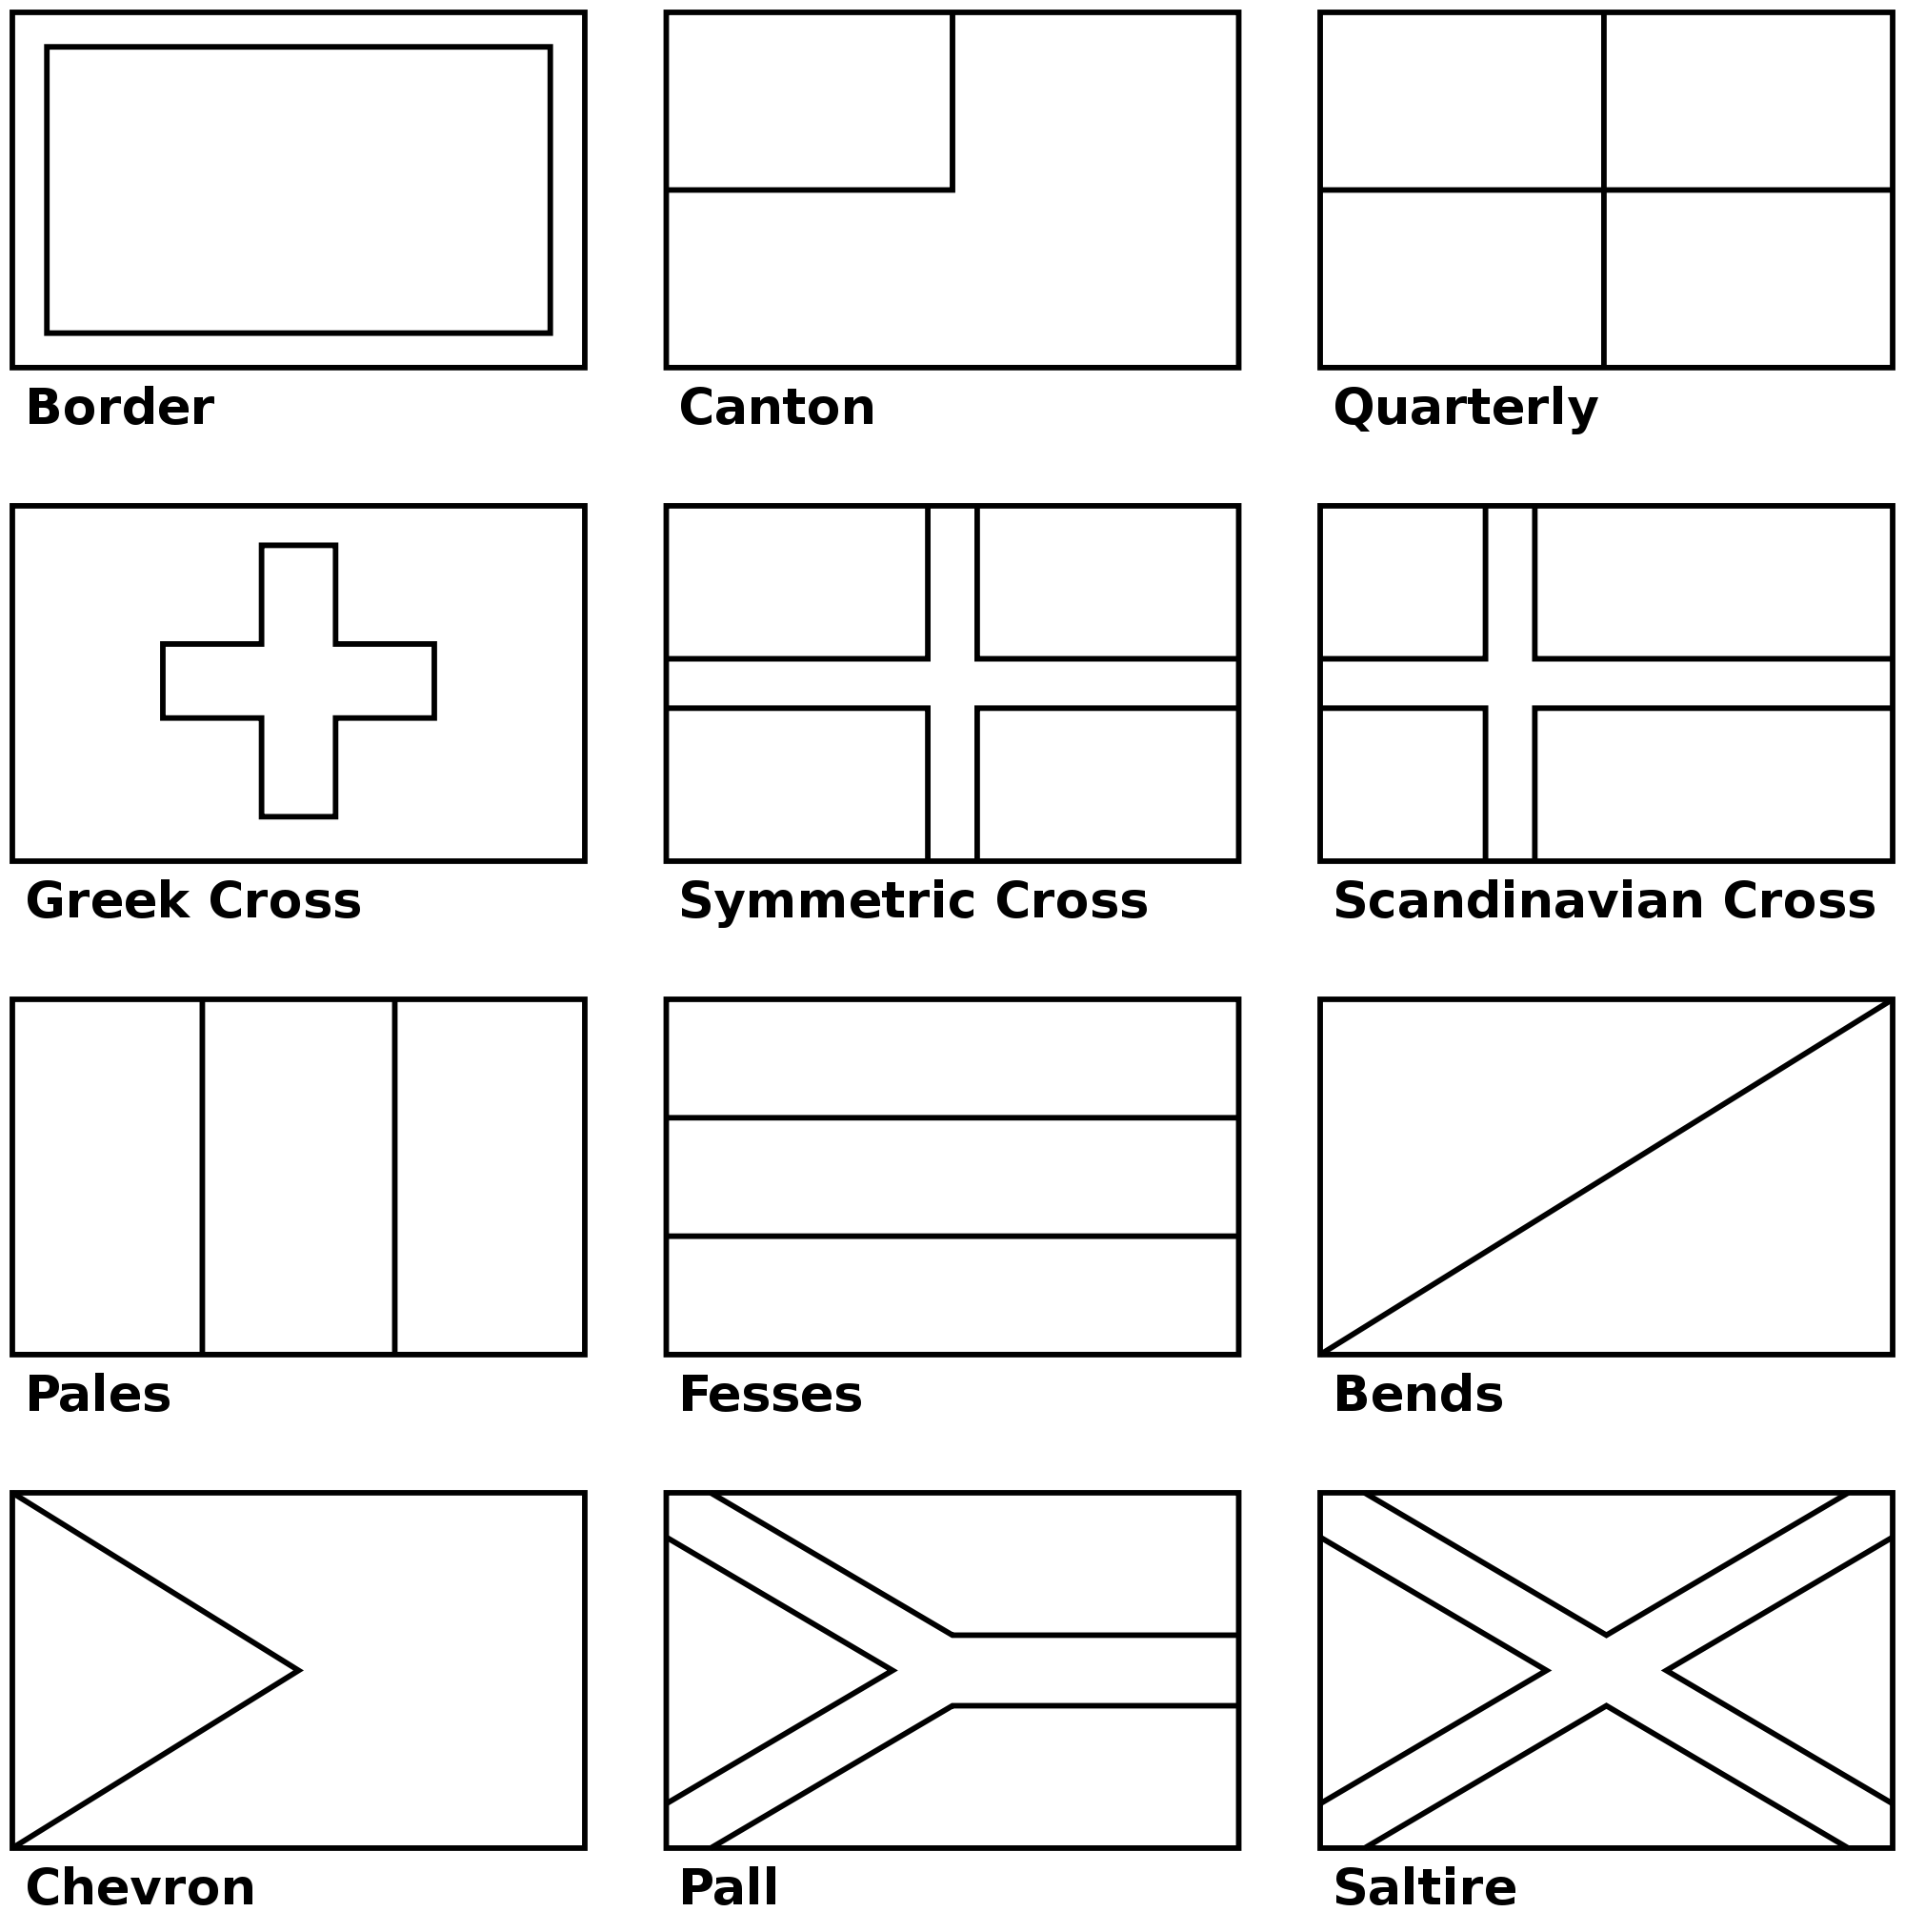 coloring pages of flags american flag coloring pages best coloring pages for kids of pages flags coloring